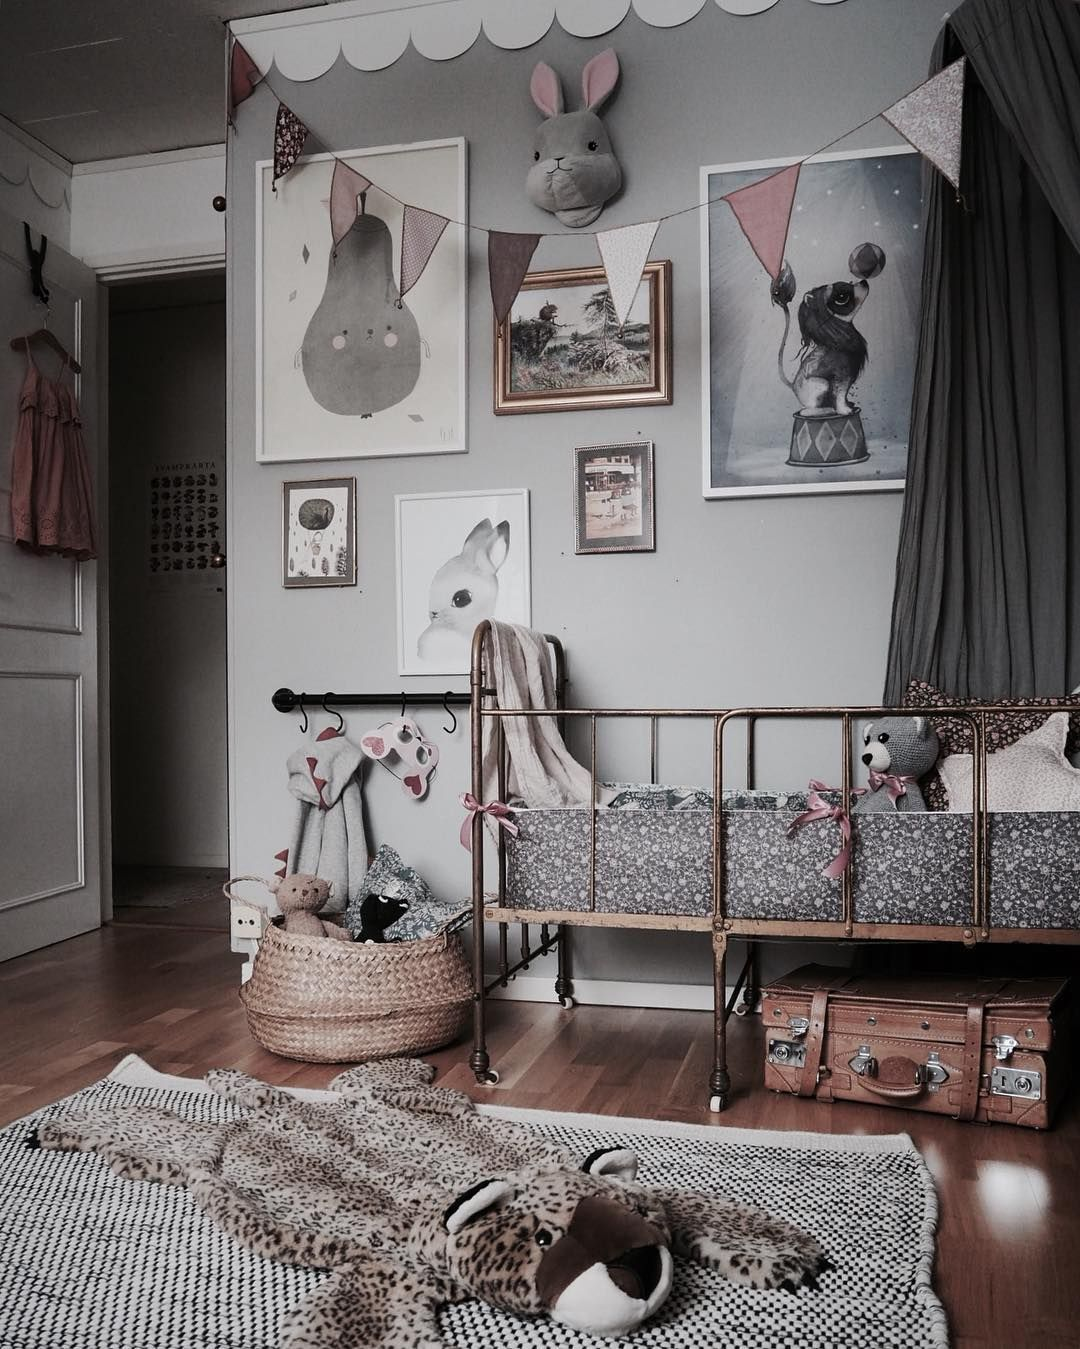 A beautiful vintage room pinterest kinderzimmer for Kinderzimmer einrichten kleinkind